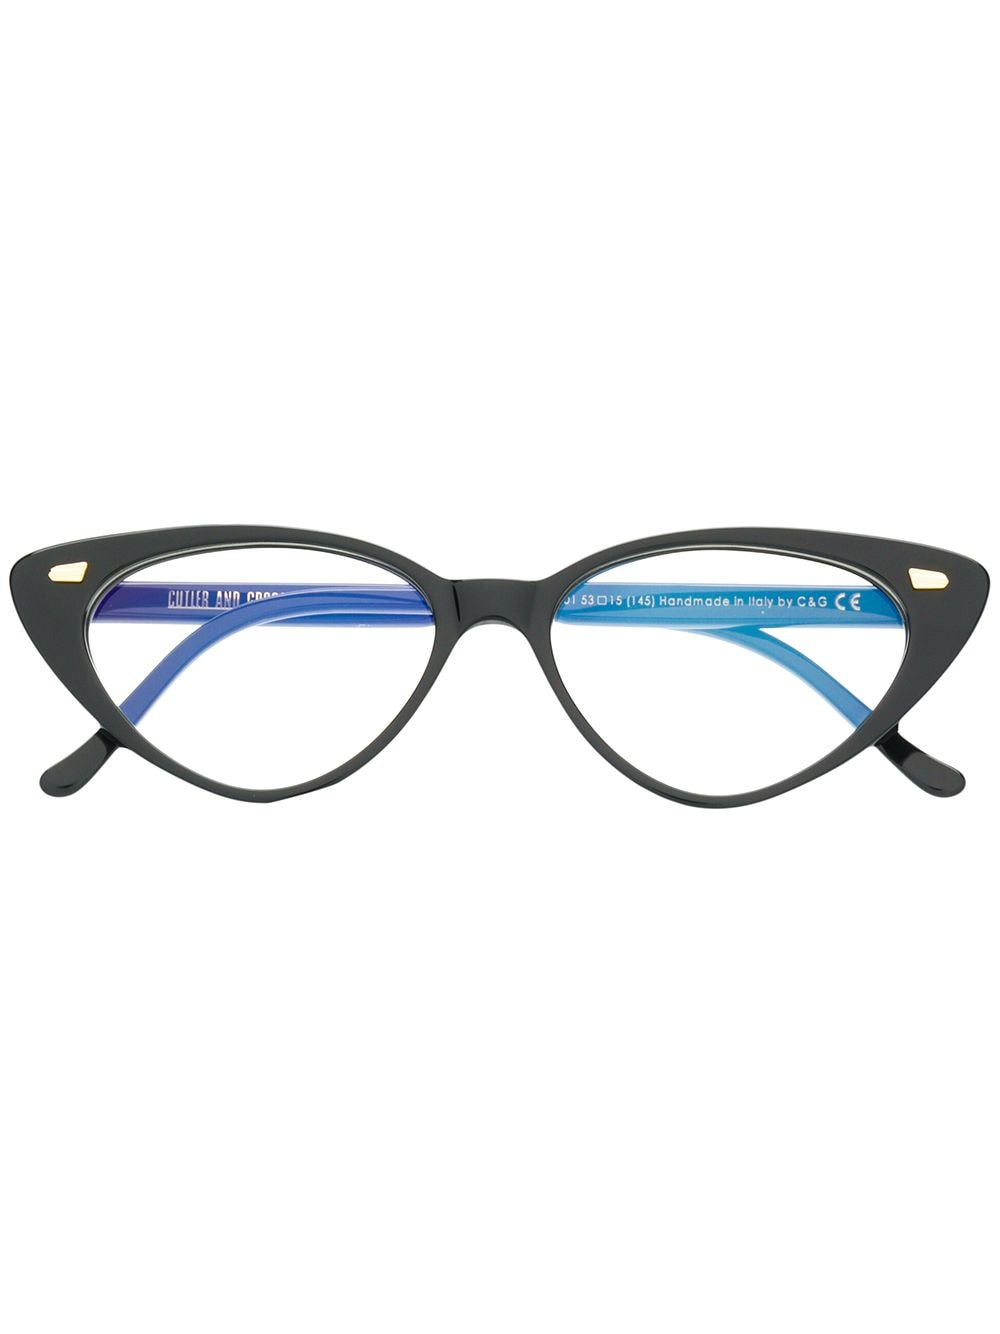 Cutler & Gross 'Candy Darling' Brille - Schwarz von Cutler & Gross